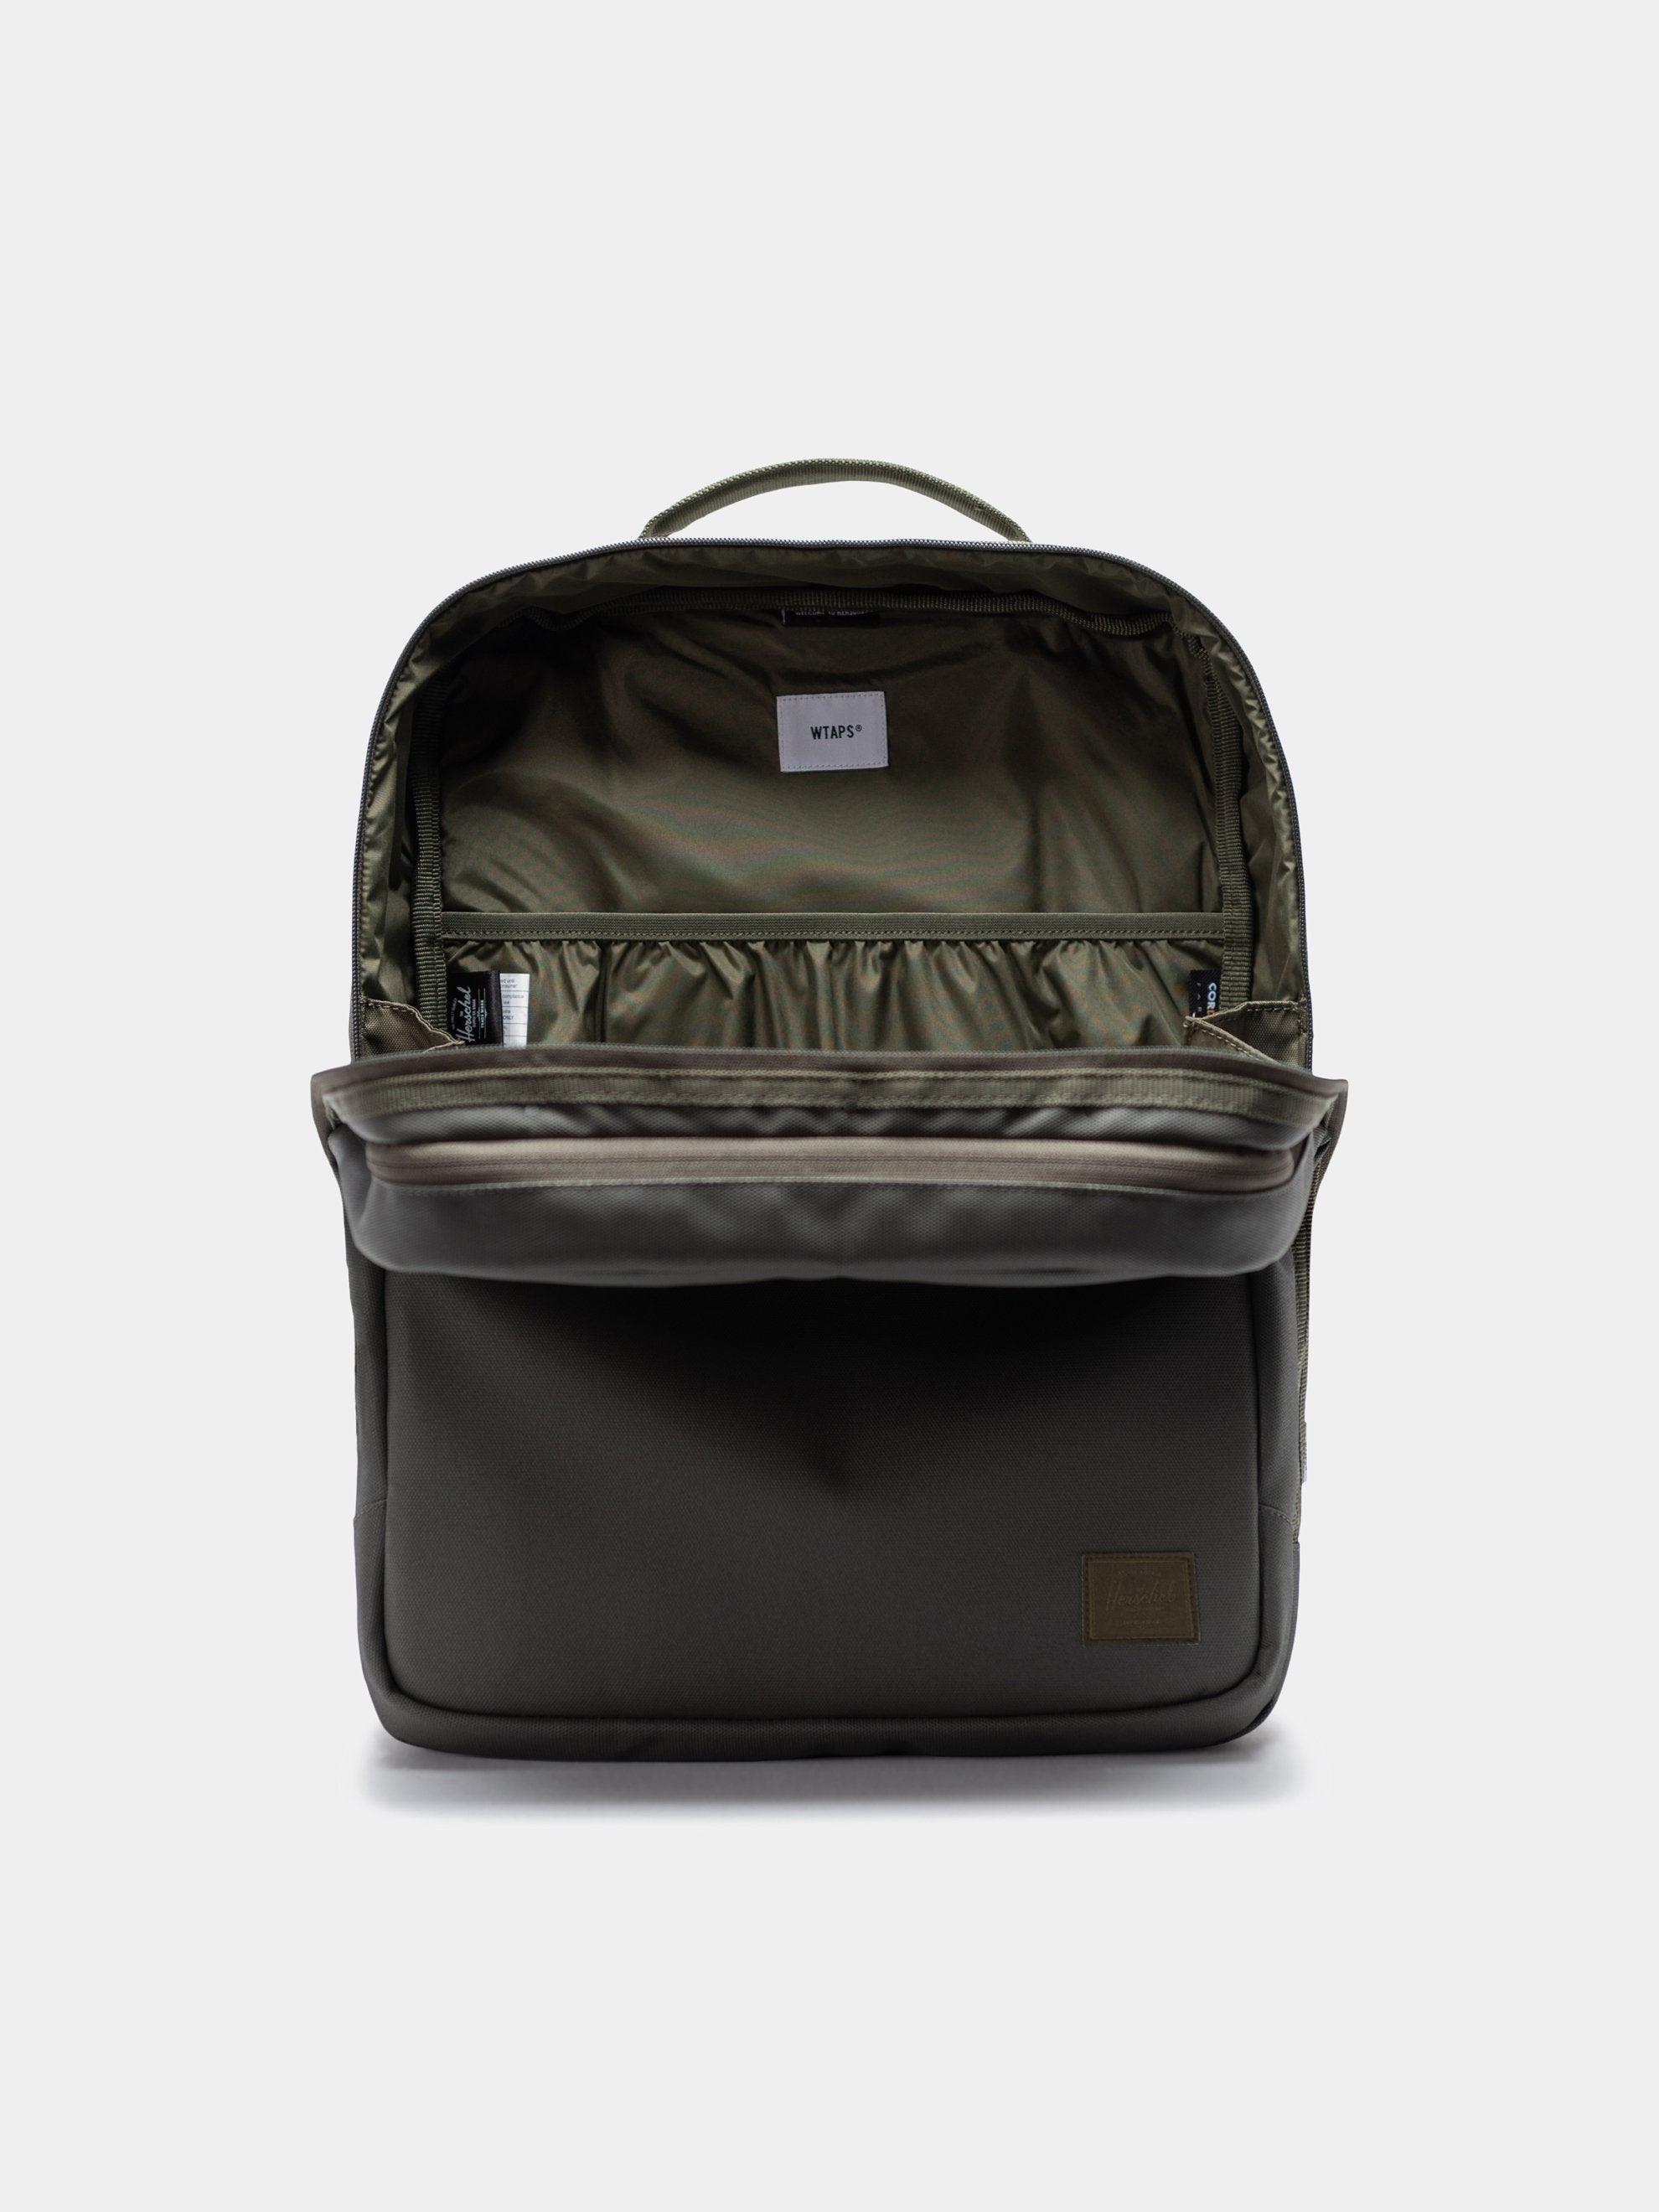 Burnt Olive Wtaps x Herschel Vessel Bag 2